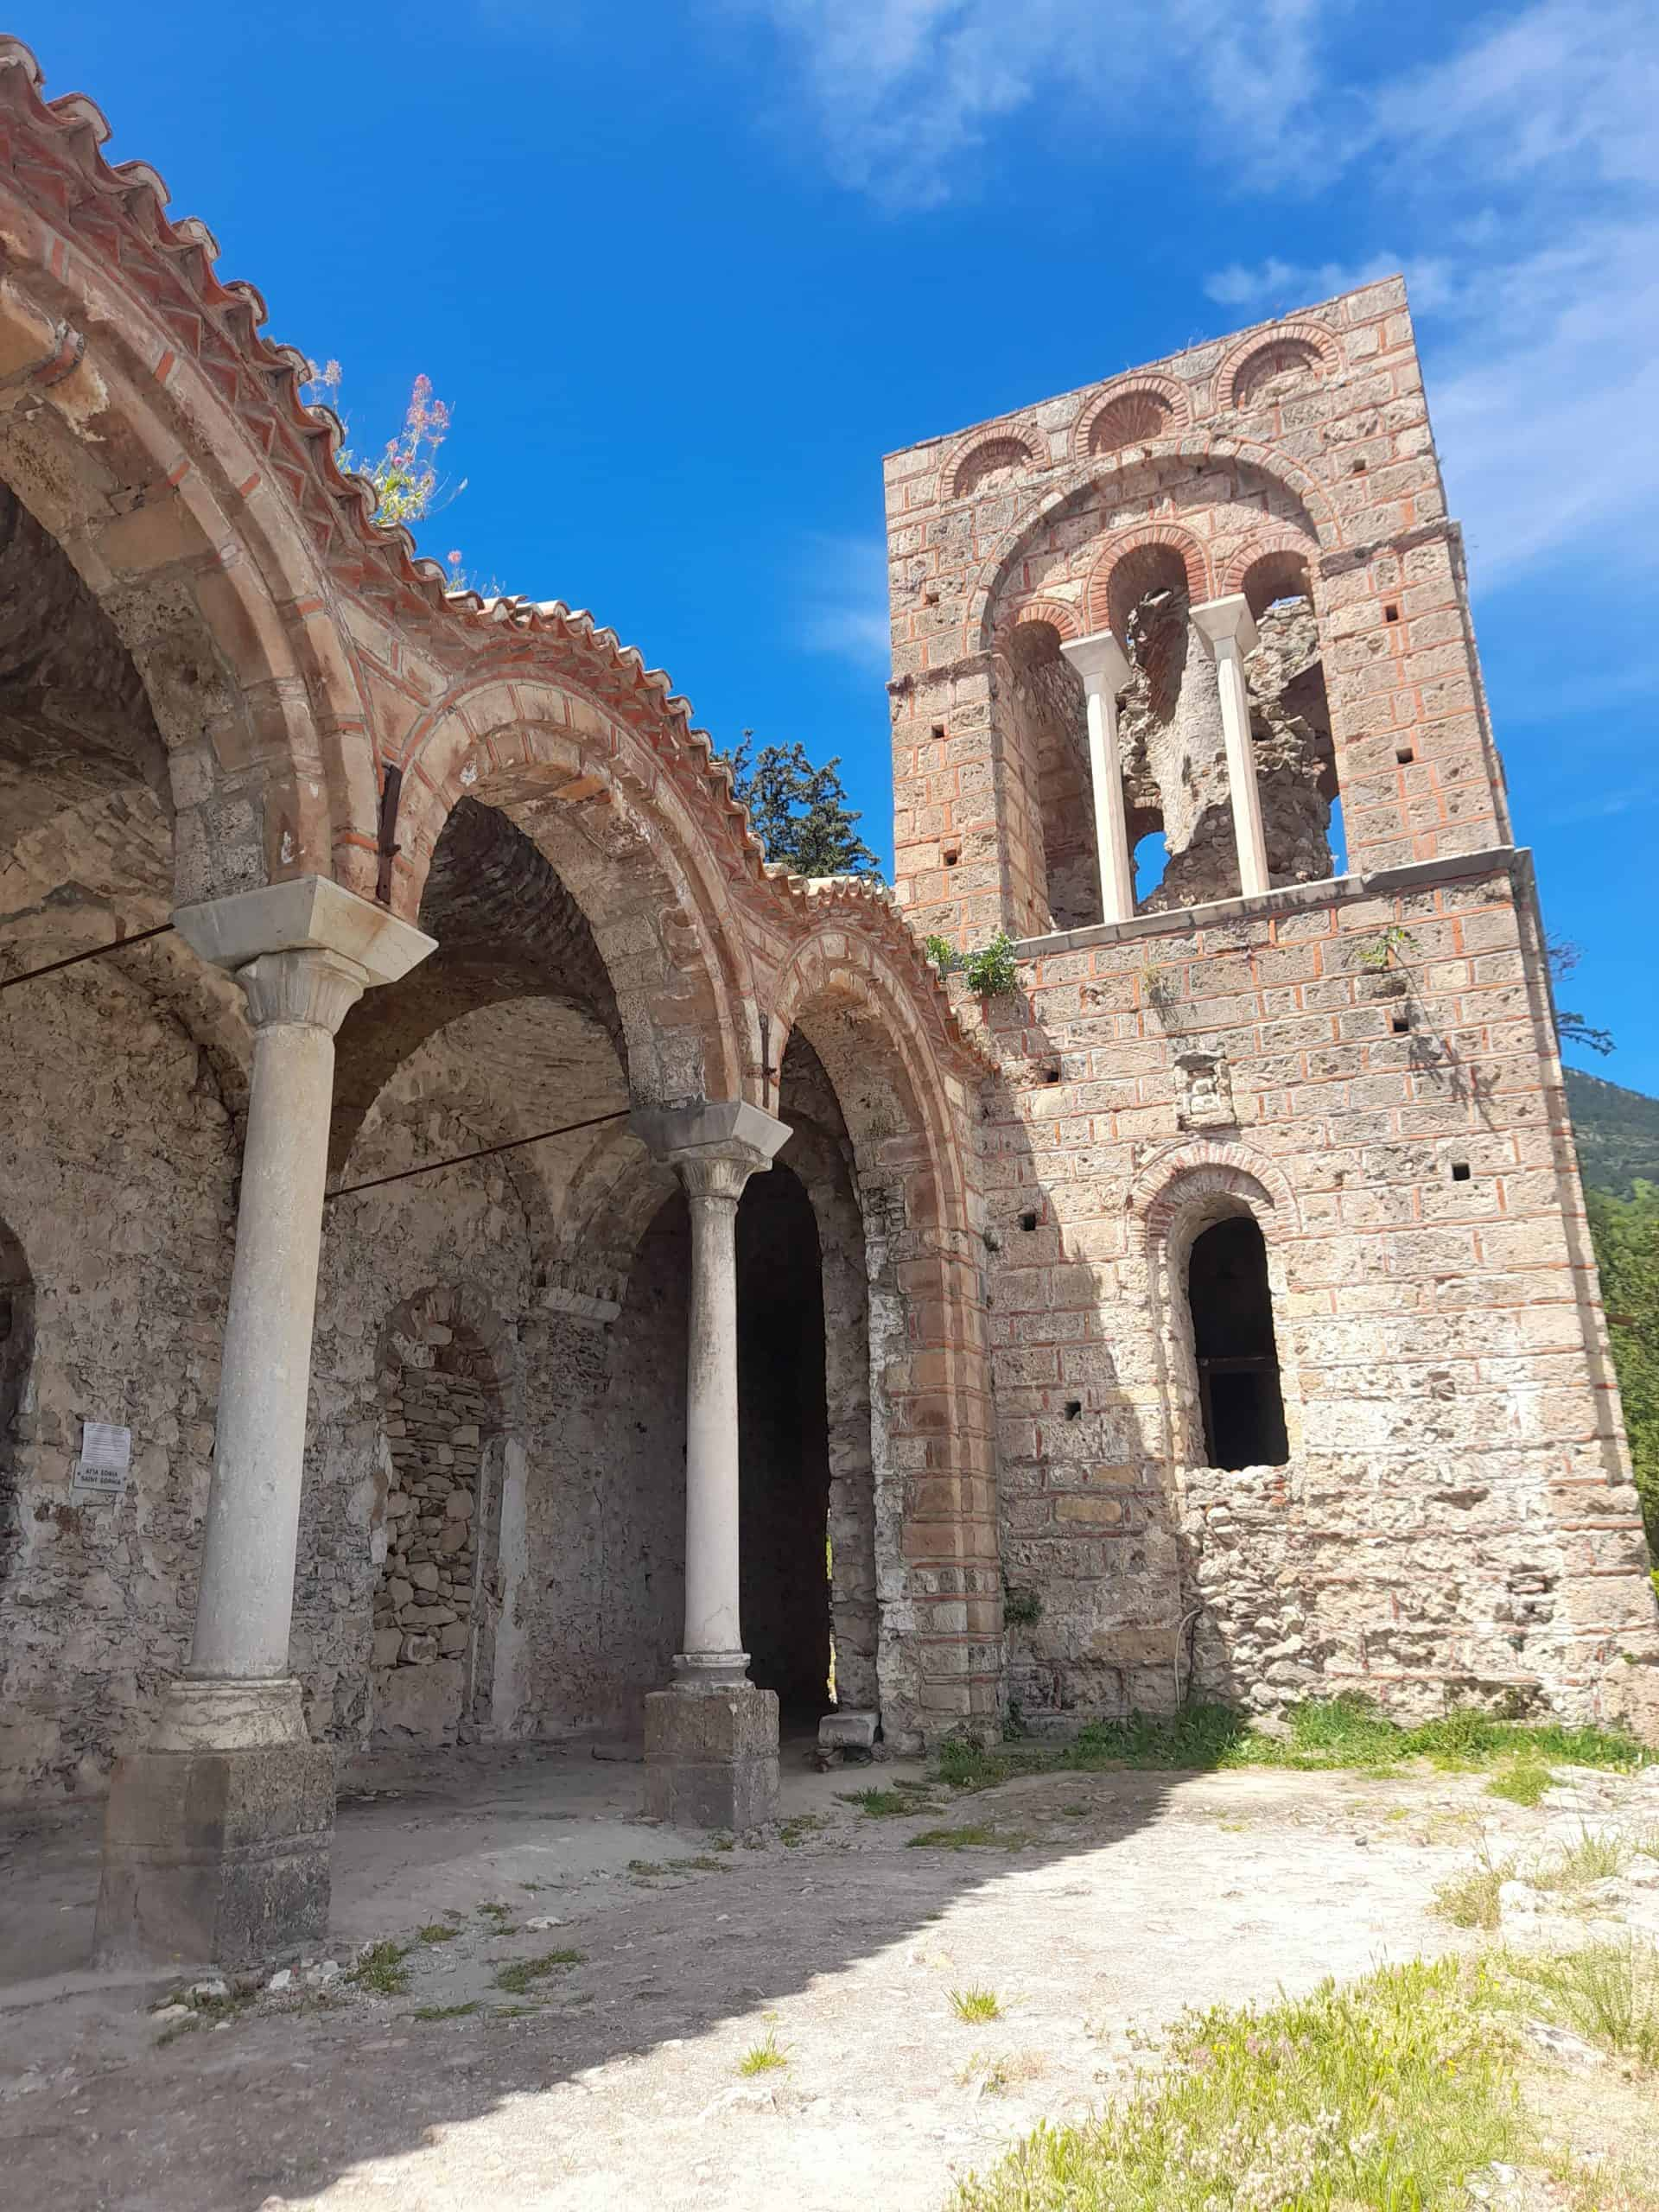 The churches of Mystras, Greece